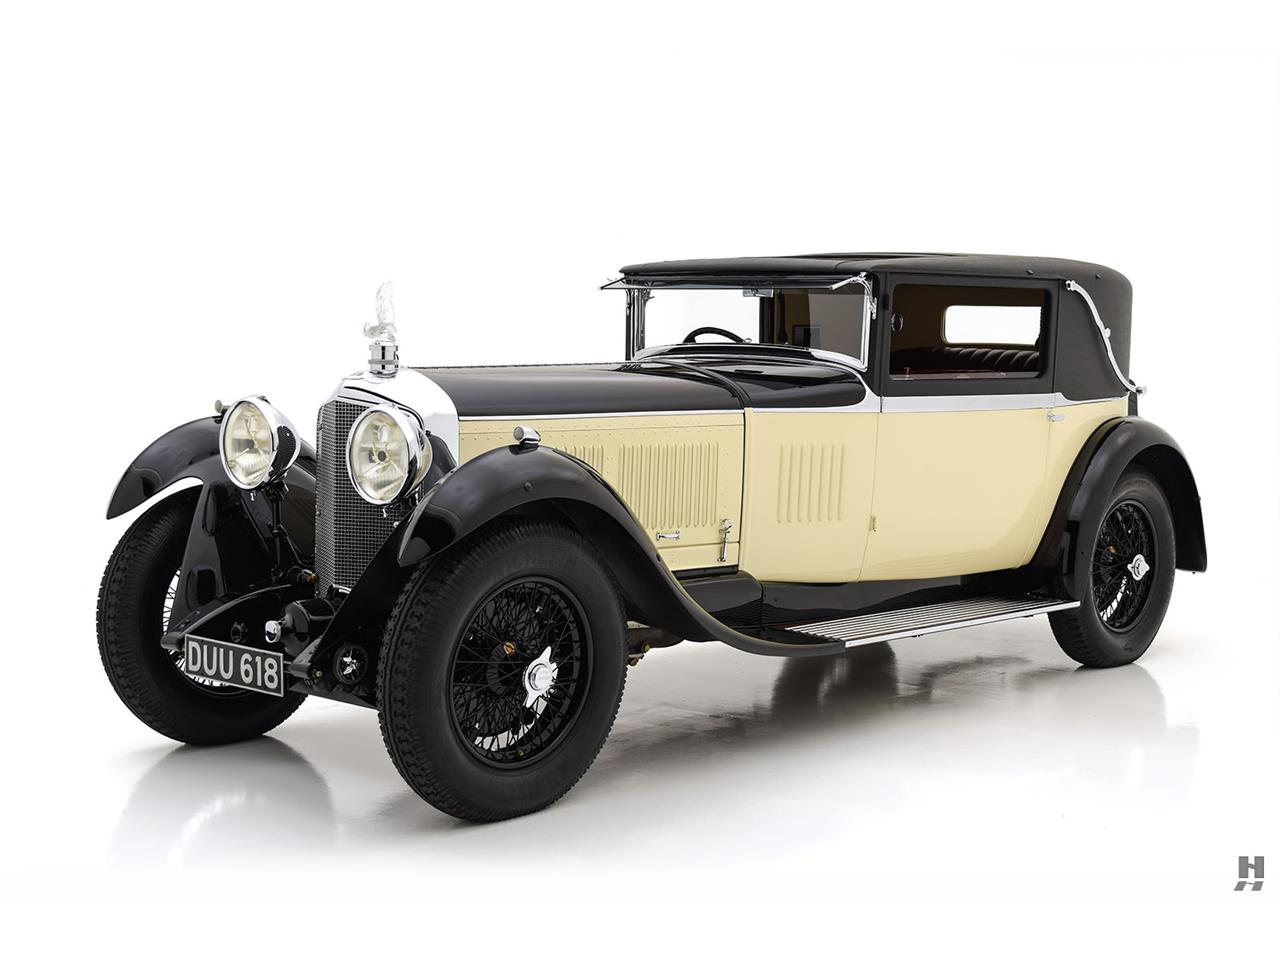 Large Picture of Classic 1930 Bentley Speed Six Tourer located in Missouri Offered by Hyman Ltd. Classic Cars - PYOI